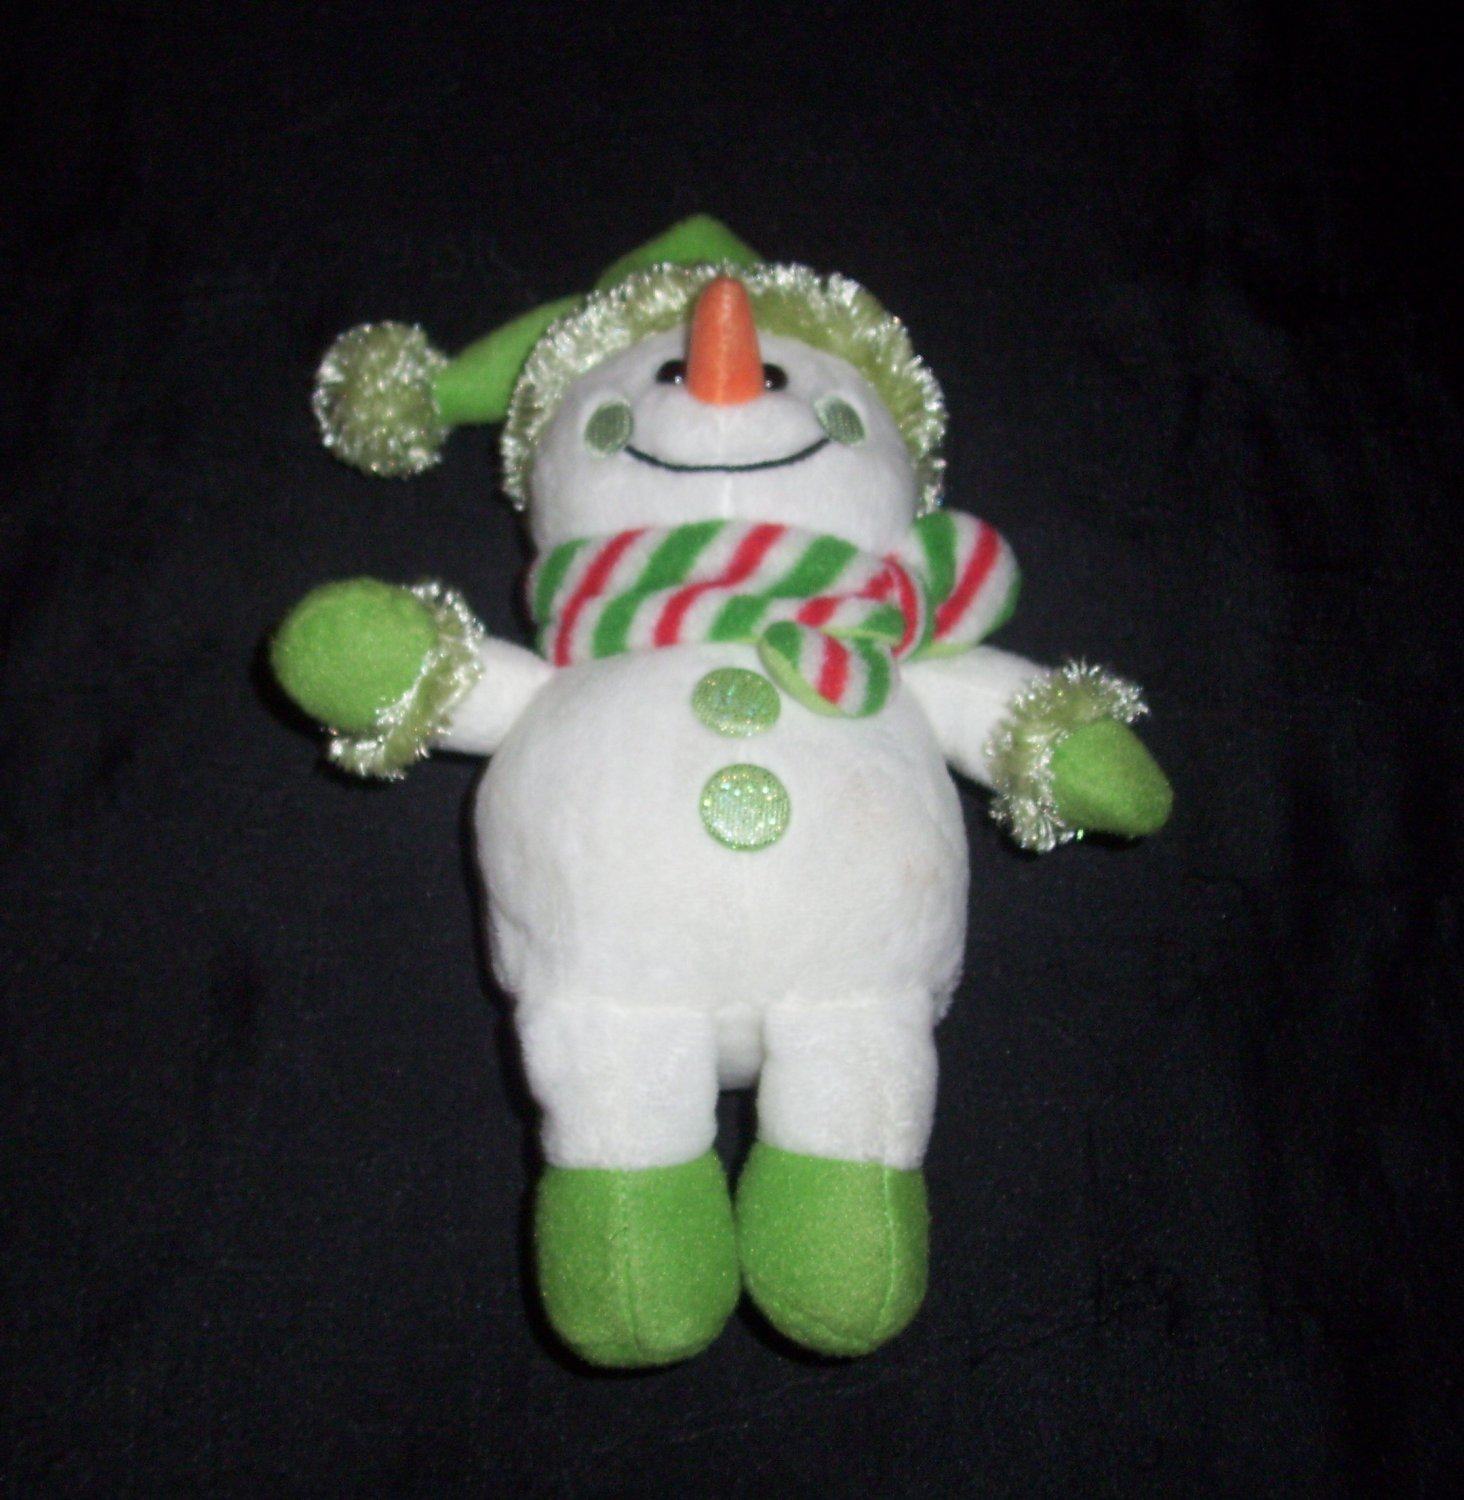 Plush Snowman Teddy Bear